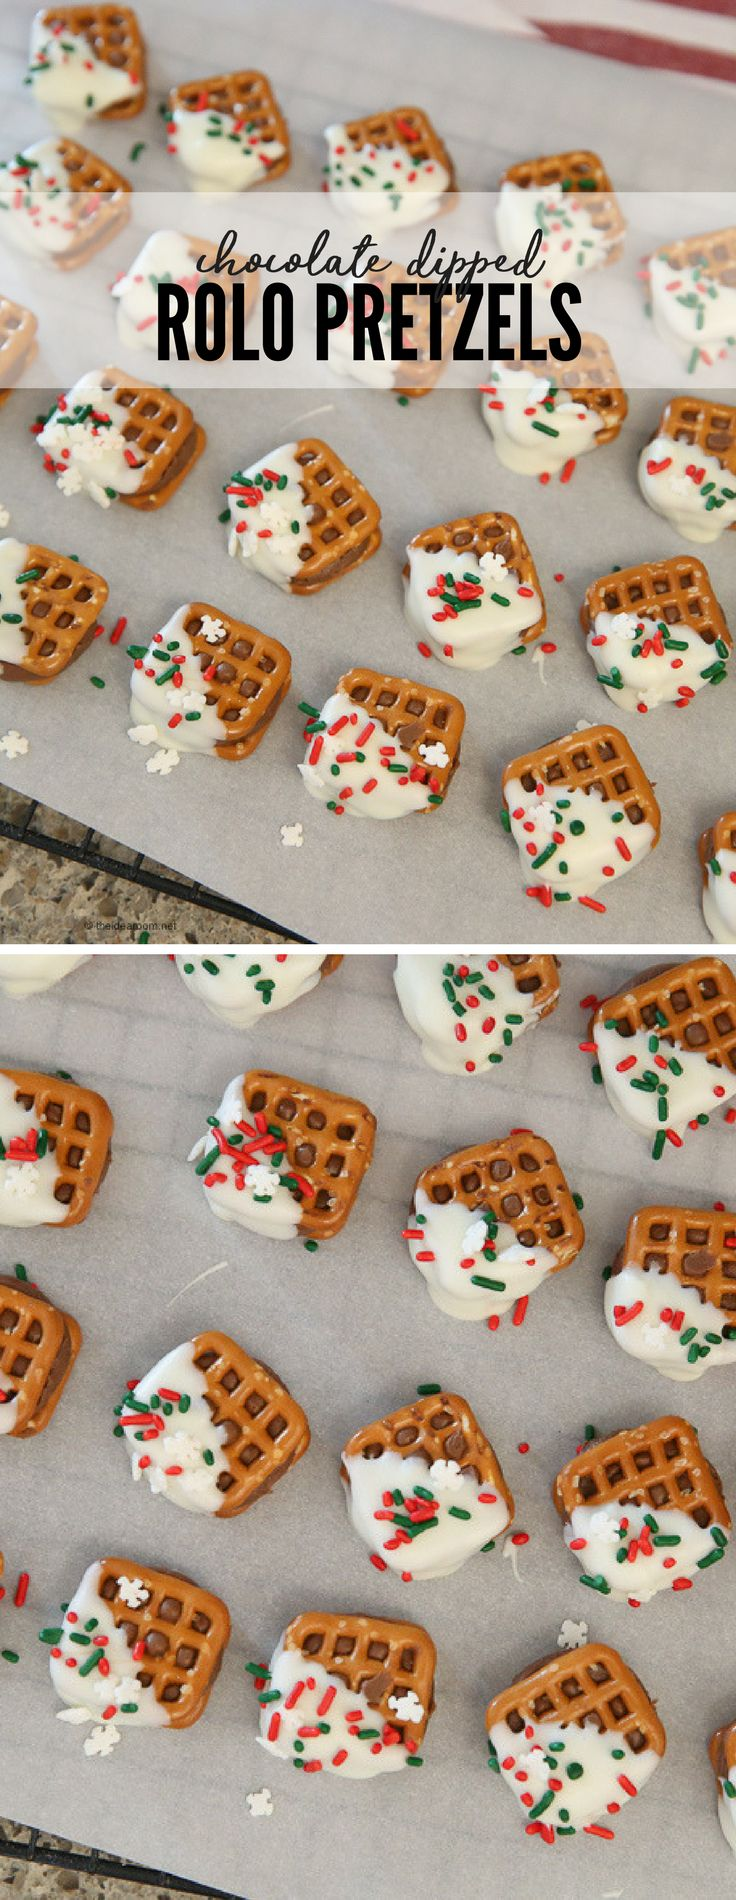 Homemade Candy Desserts | Christmas Candy | Make some Chocolate Dipped Rolo Pretzels for your neighbors and friends this holiday season.